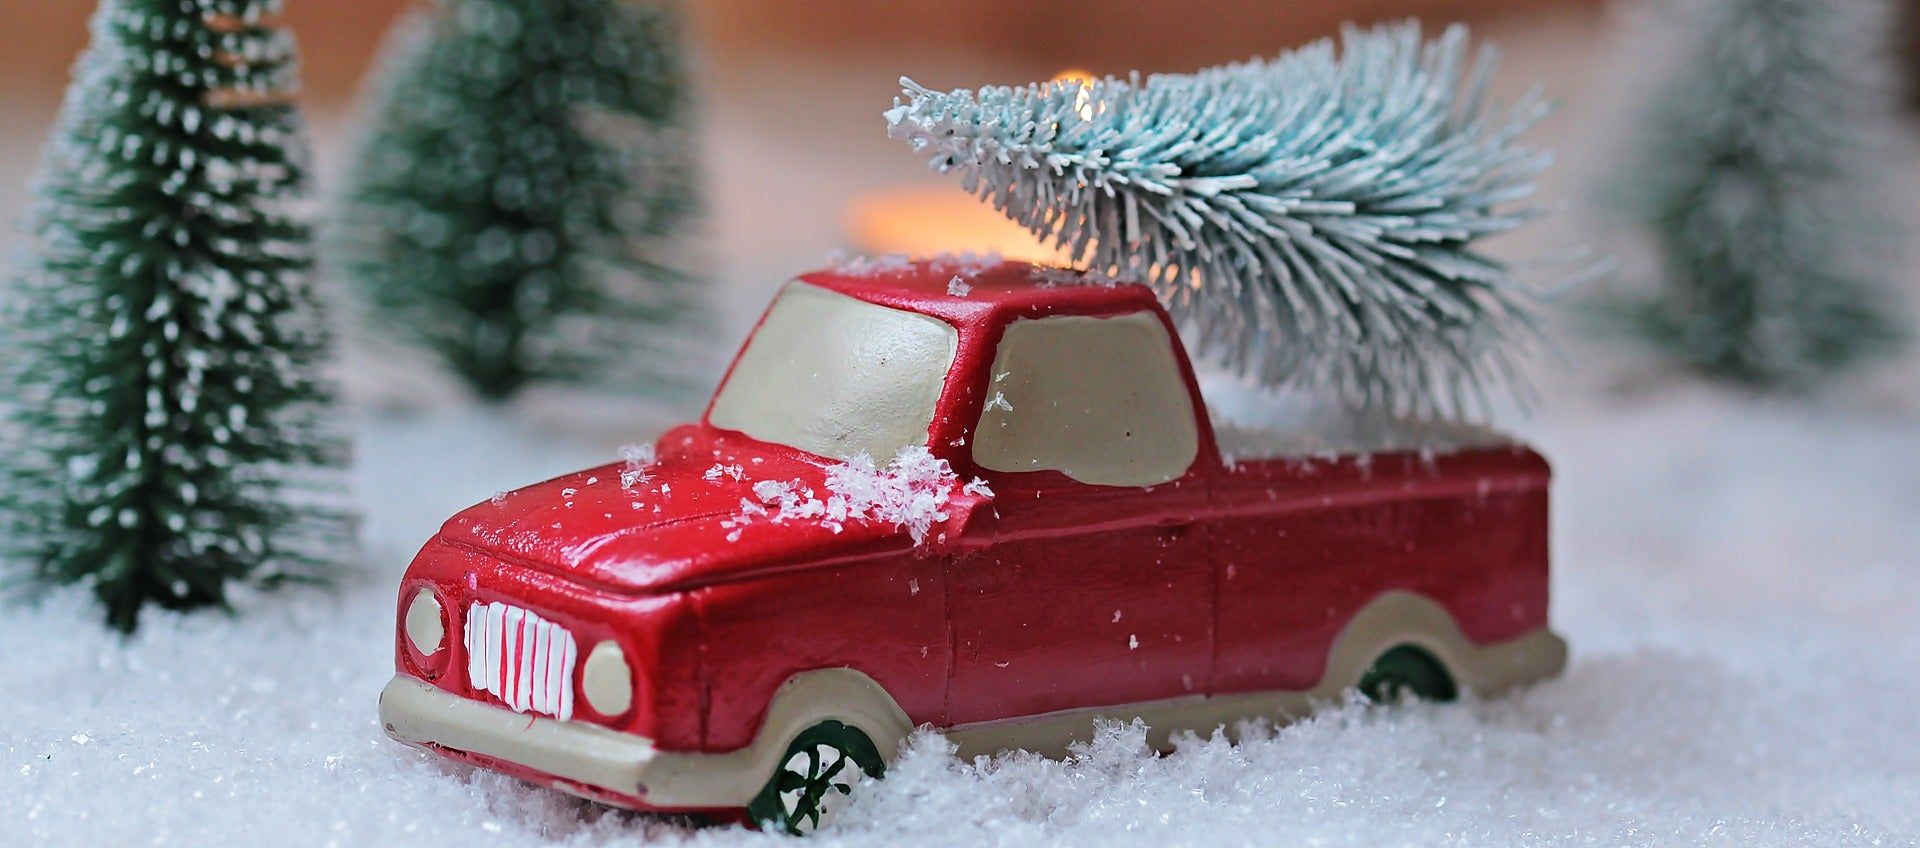 A toy truck carries a small Christmas tree